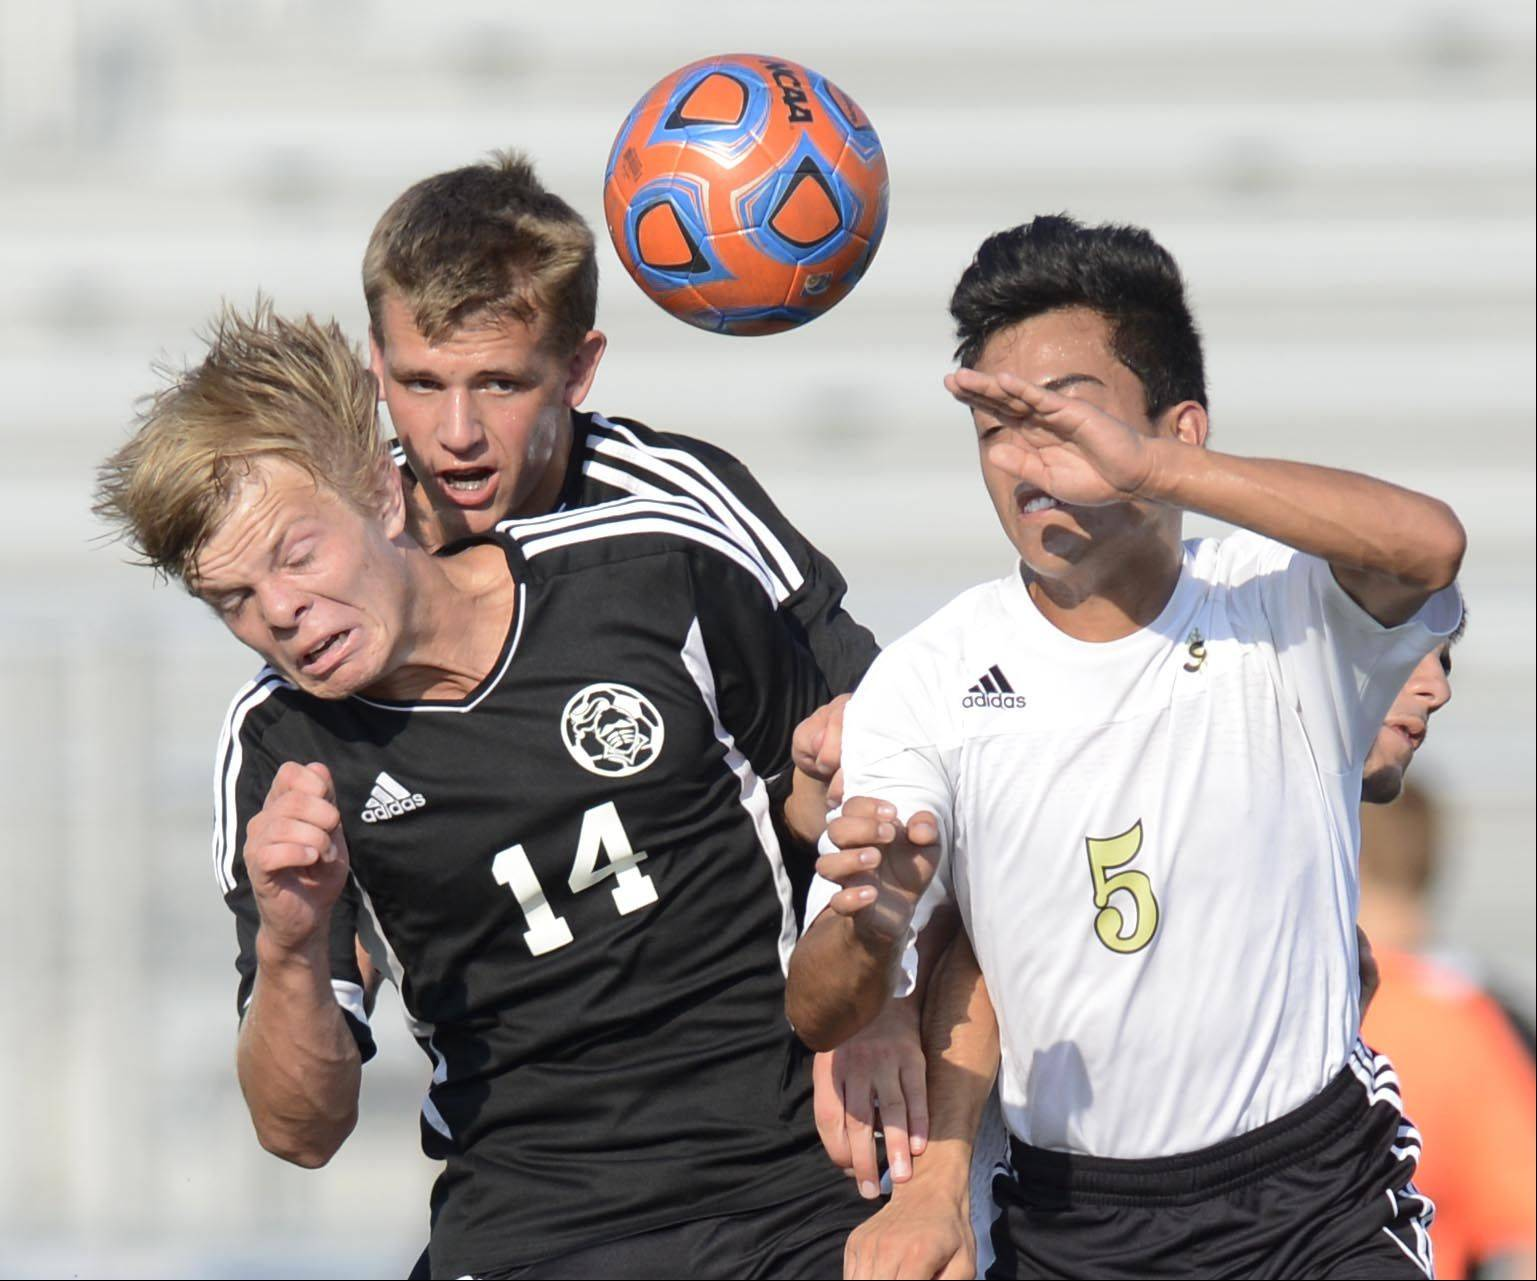 Streamwood's Juan Munoz and Kaneland's Kyle Romas and Kolin Limbrick collide competing for a header Monday in Streamwood.